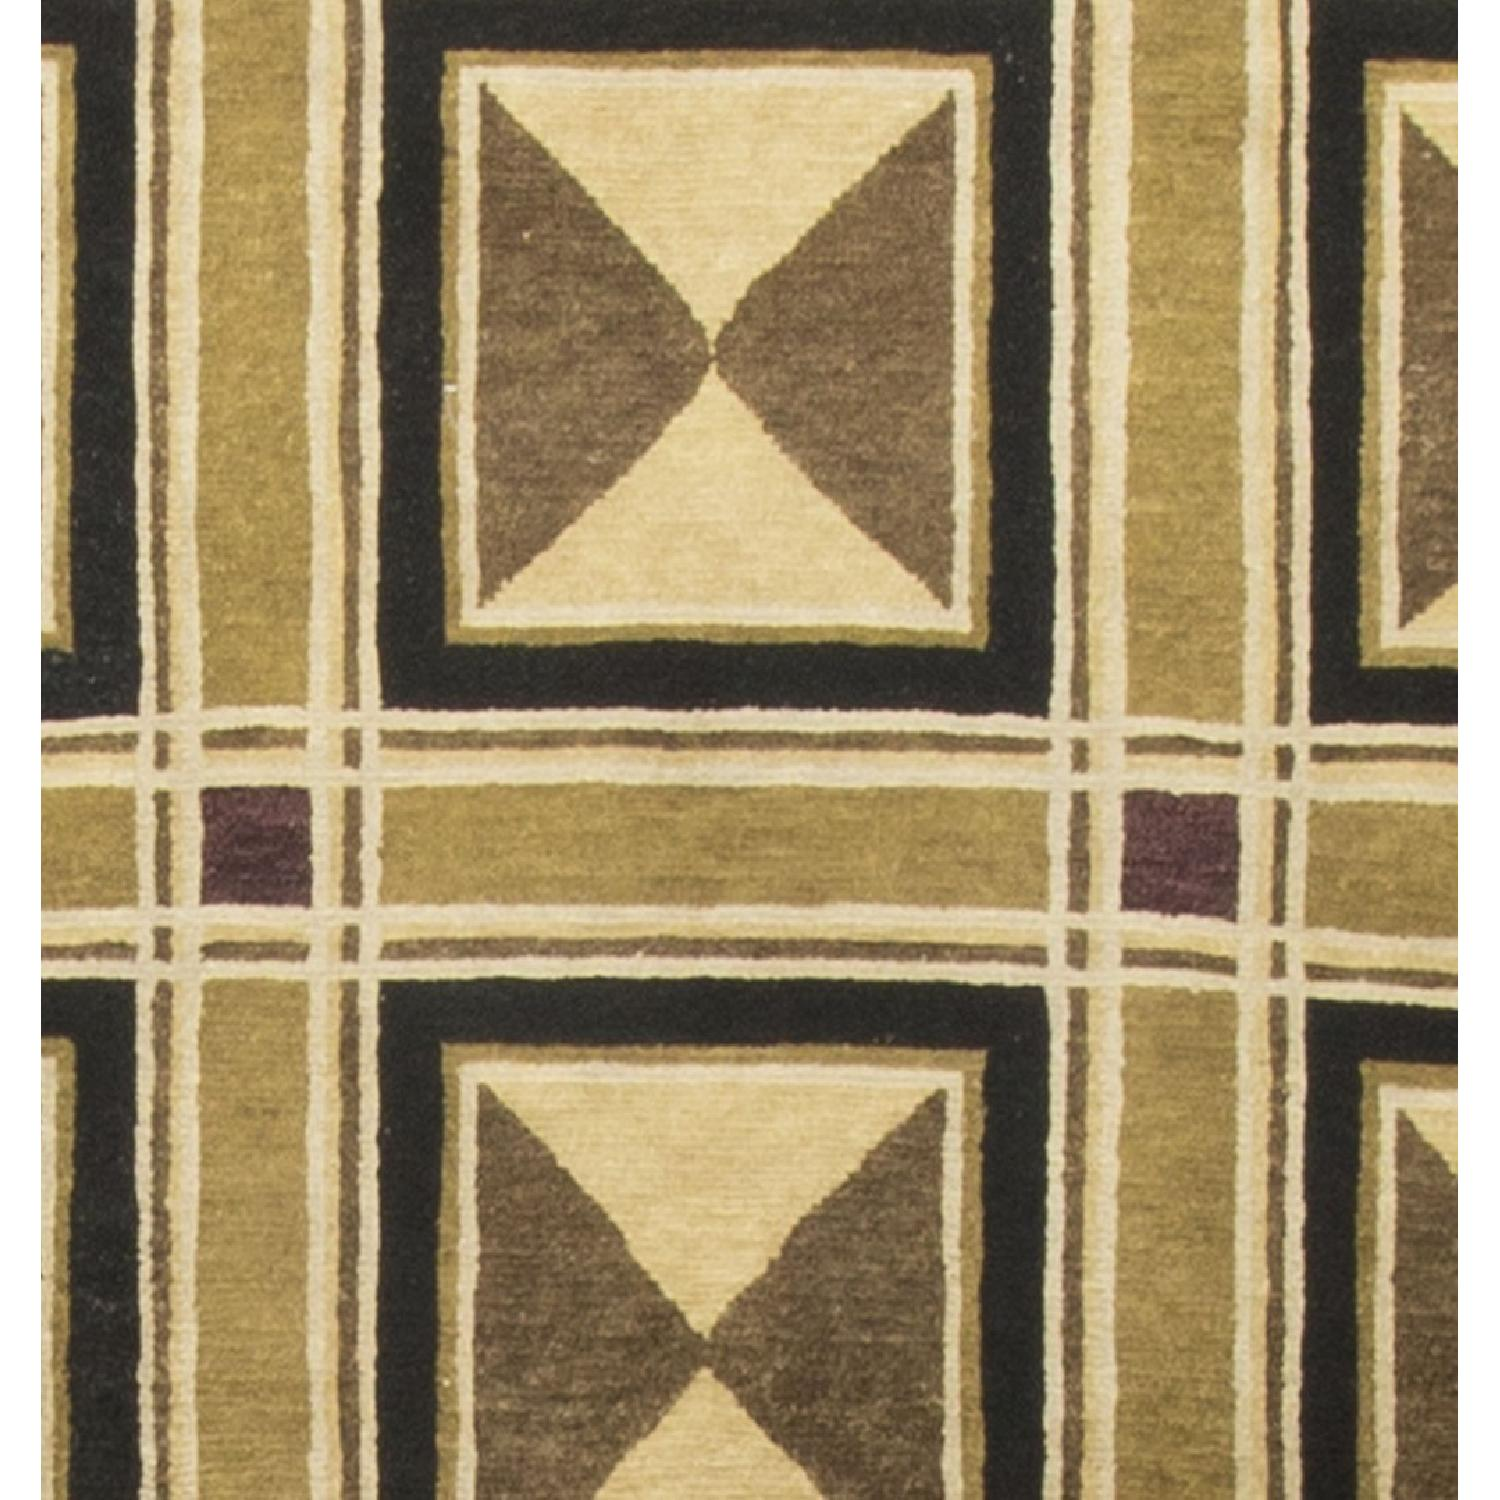 Modern Contemporary Hand Knotted Wool Rug in Beige/Brown/Black - image-2